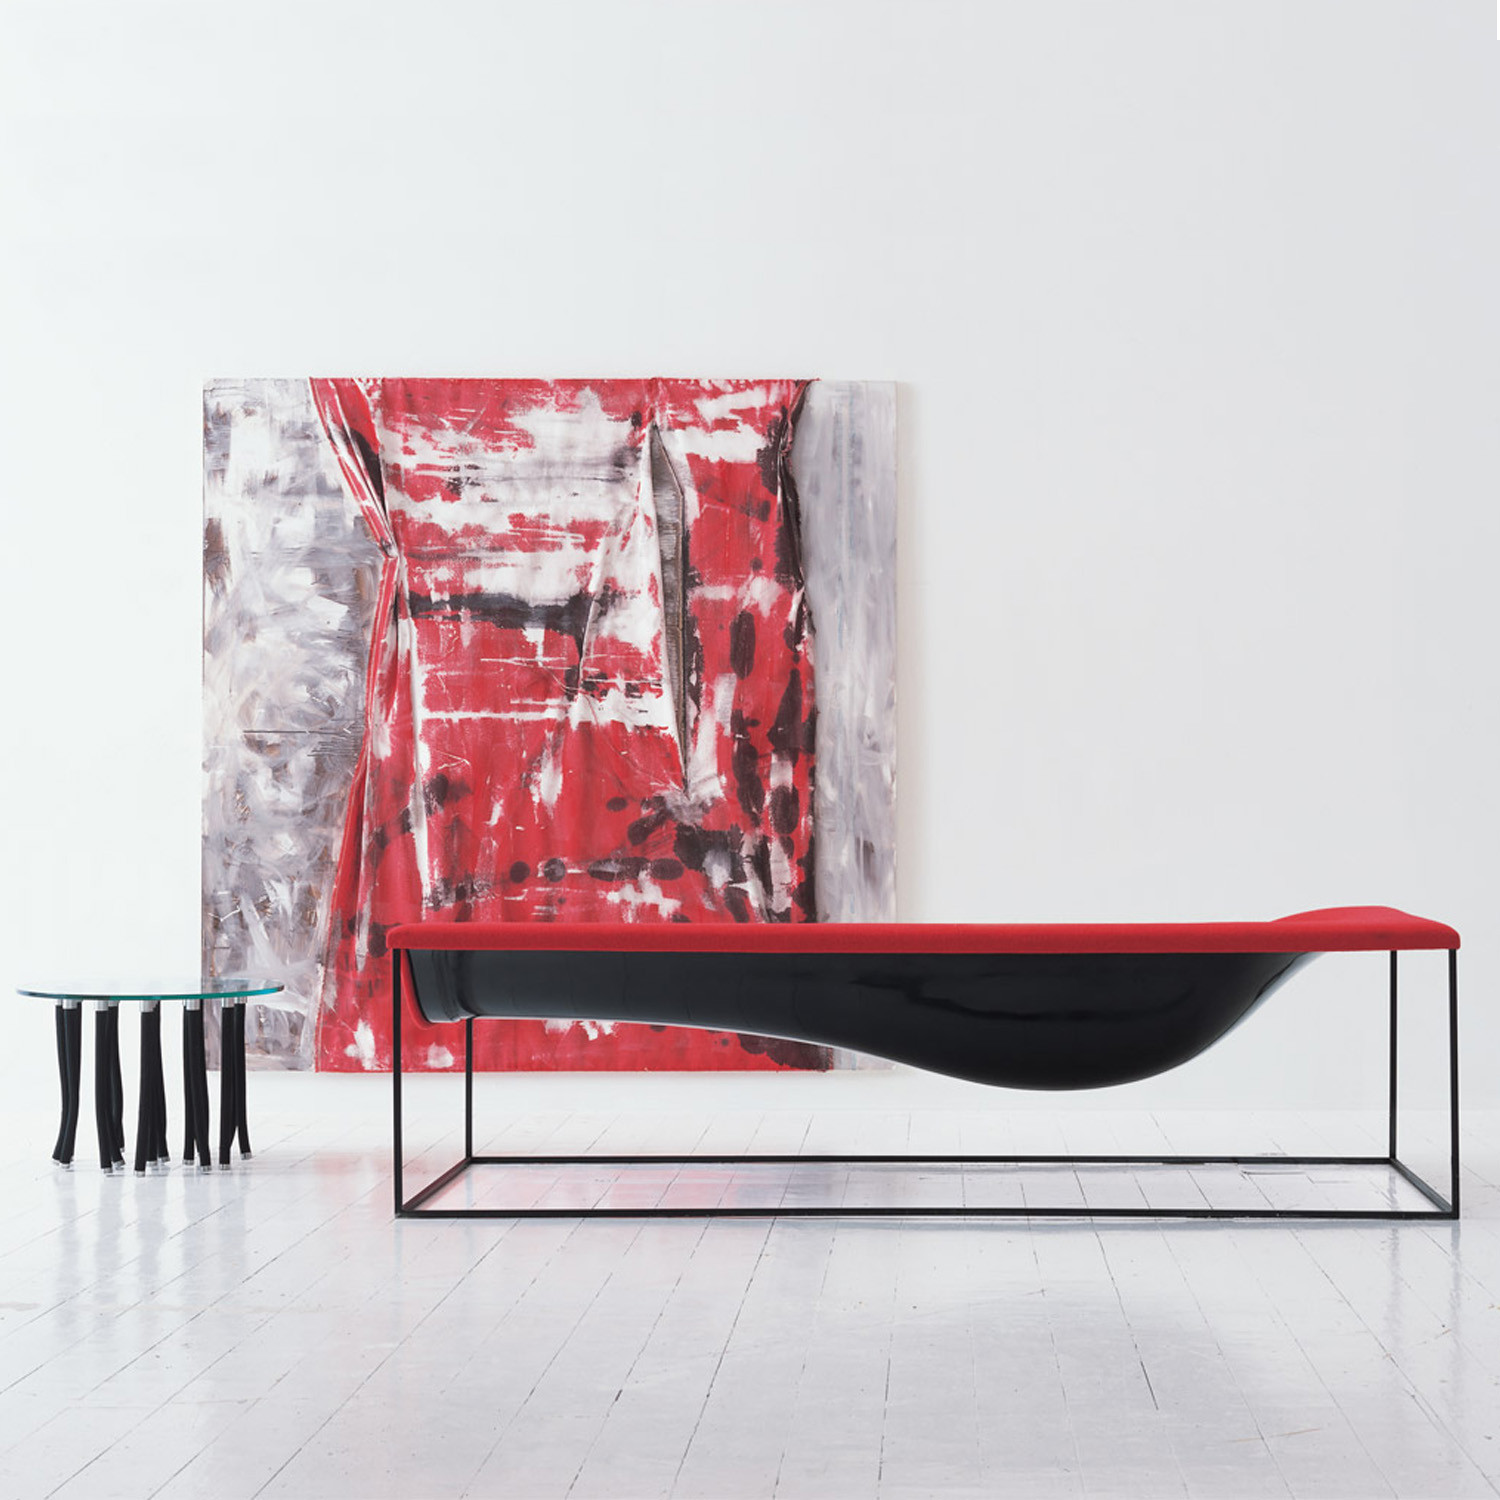 Outline Chaise Longue